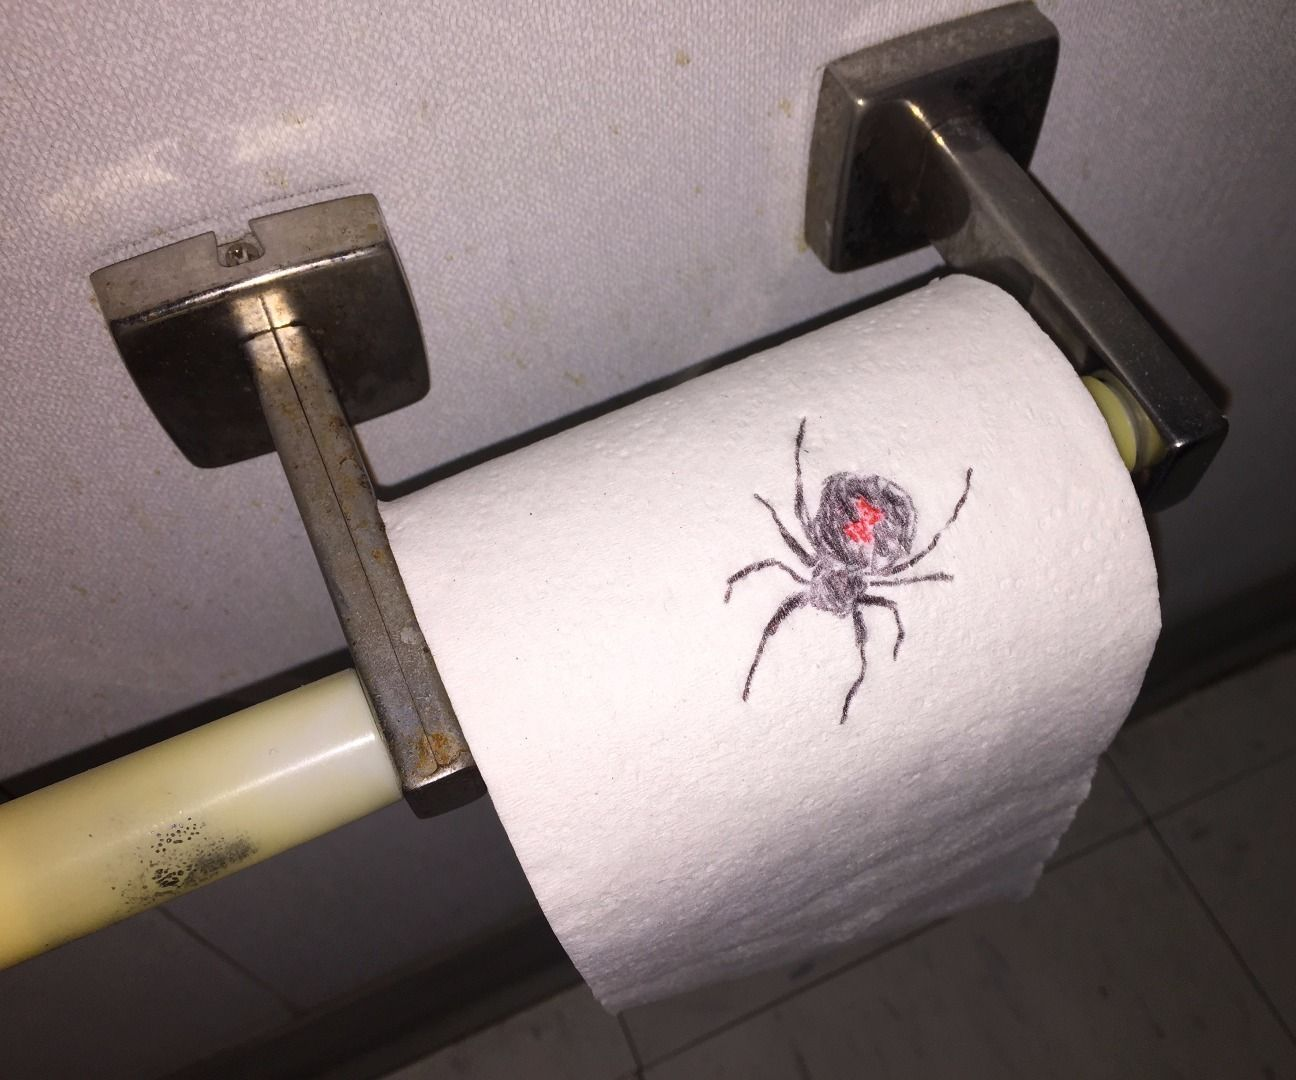 Drawn spider toilet paper On Spider Paper (with Prank